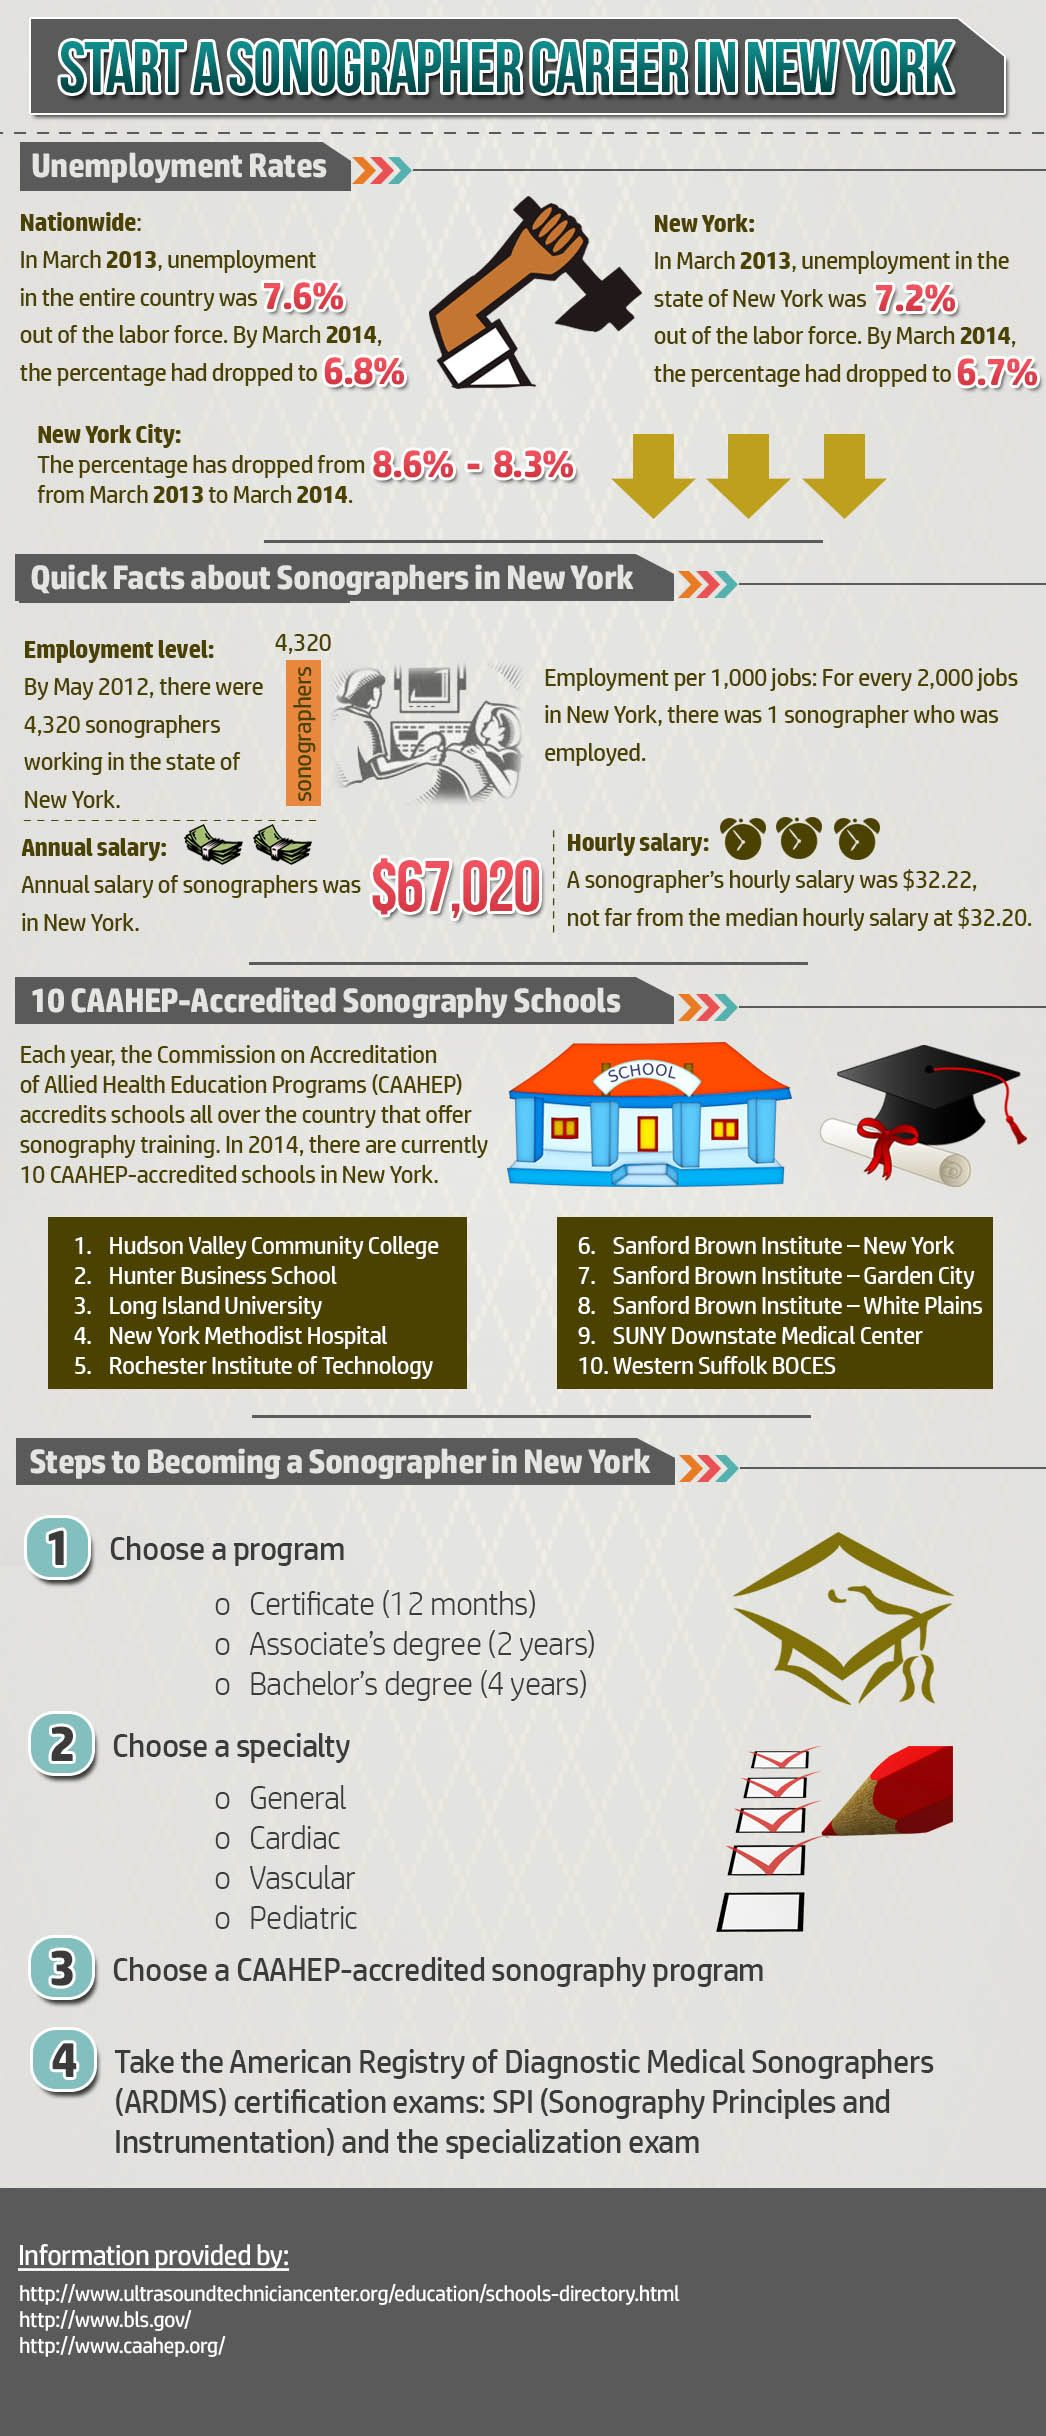 Infographic Start a Sonographer Career in New York